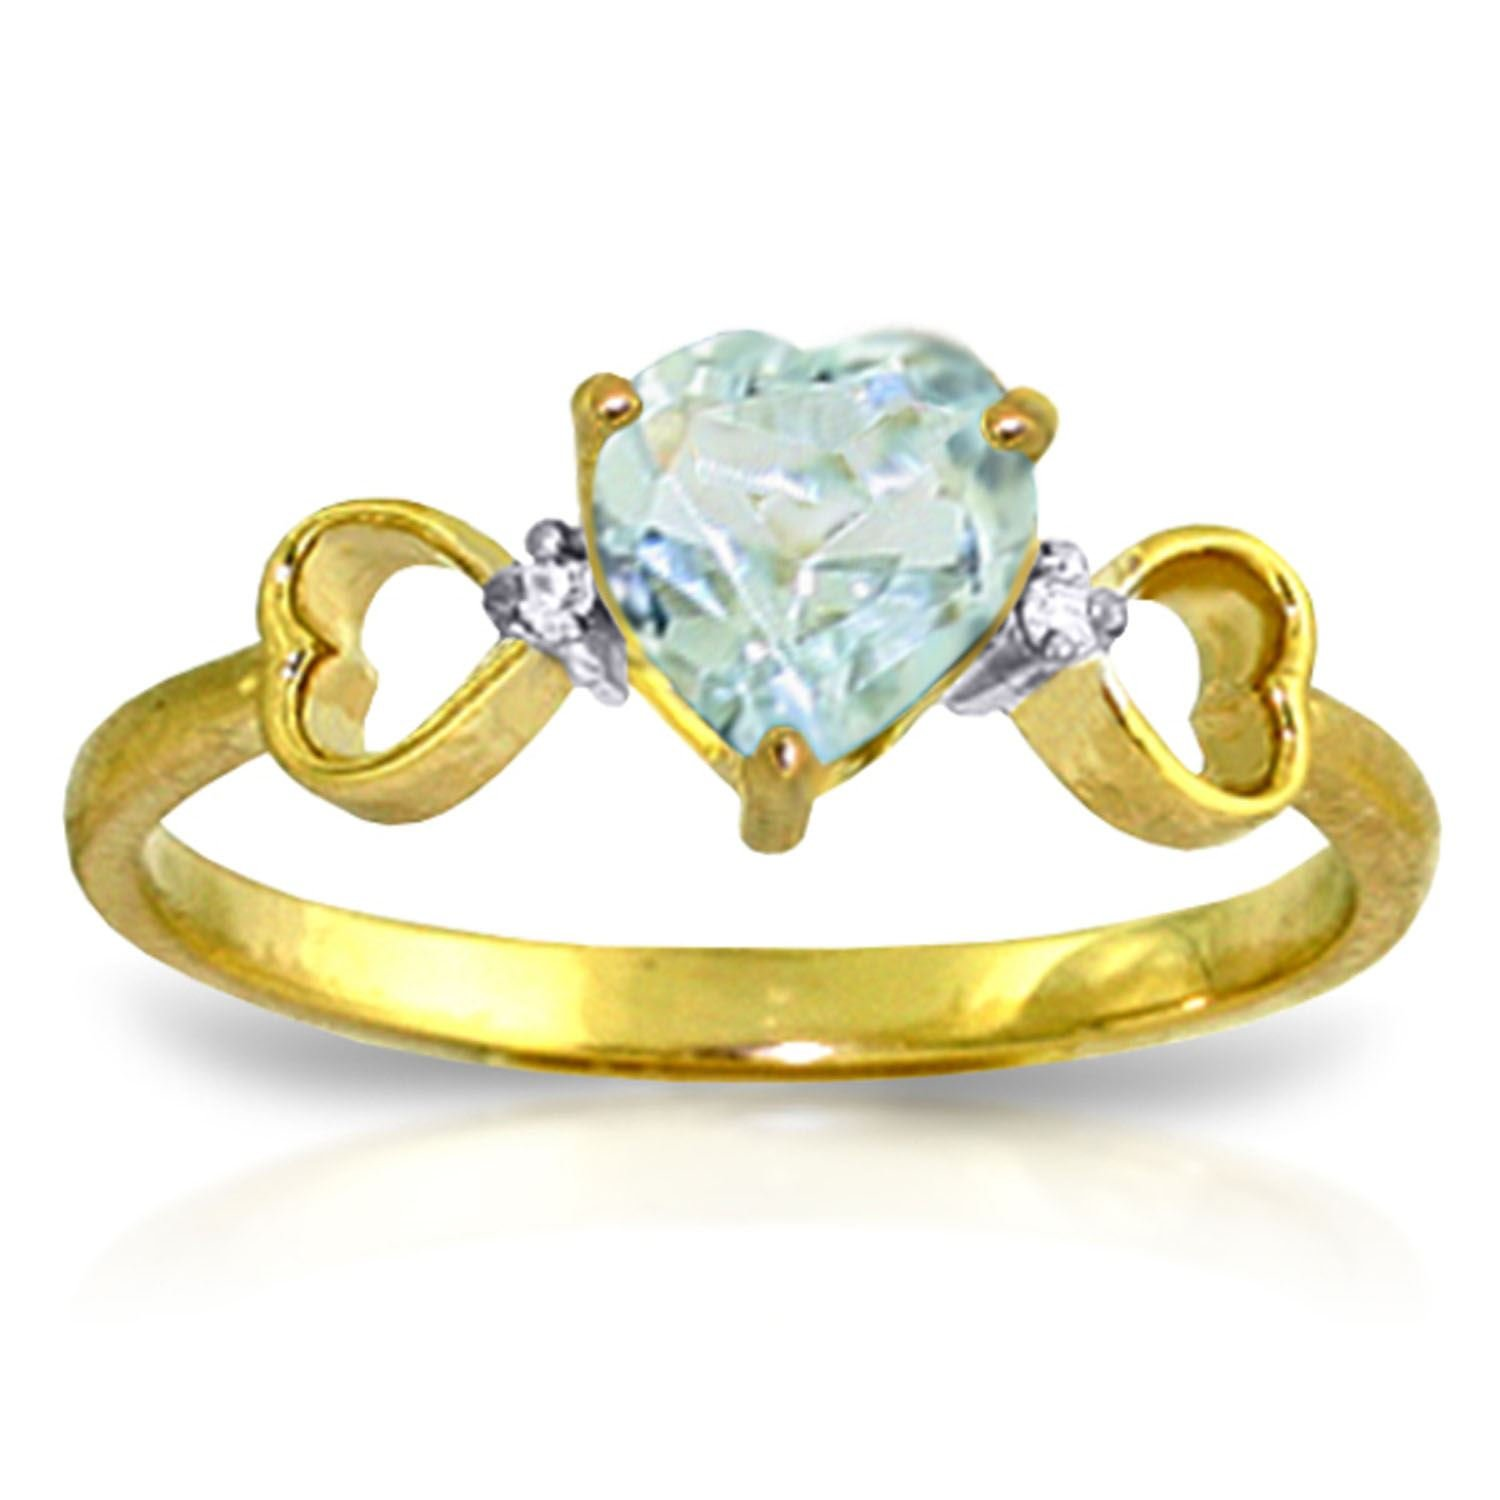 ALARRI 0.96 CTW 14K Solid Gold Lovely Love Aquamarine Diamond Ring With Ring Size 8